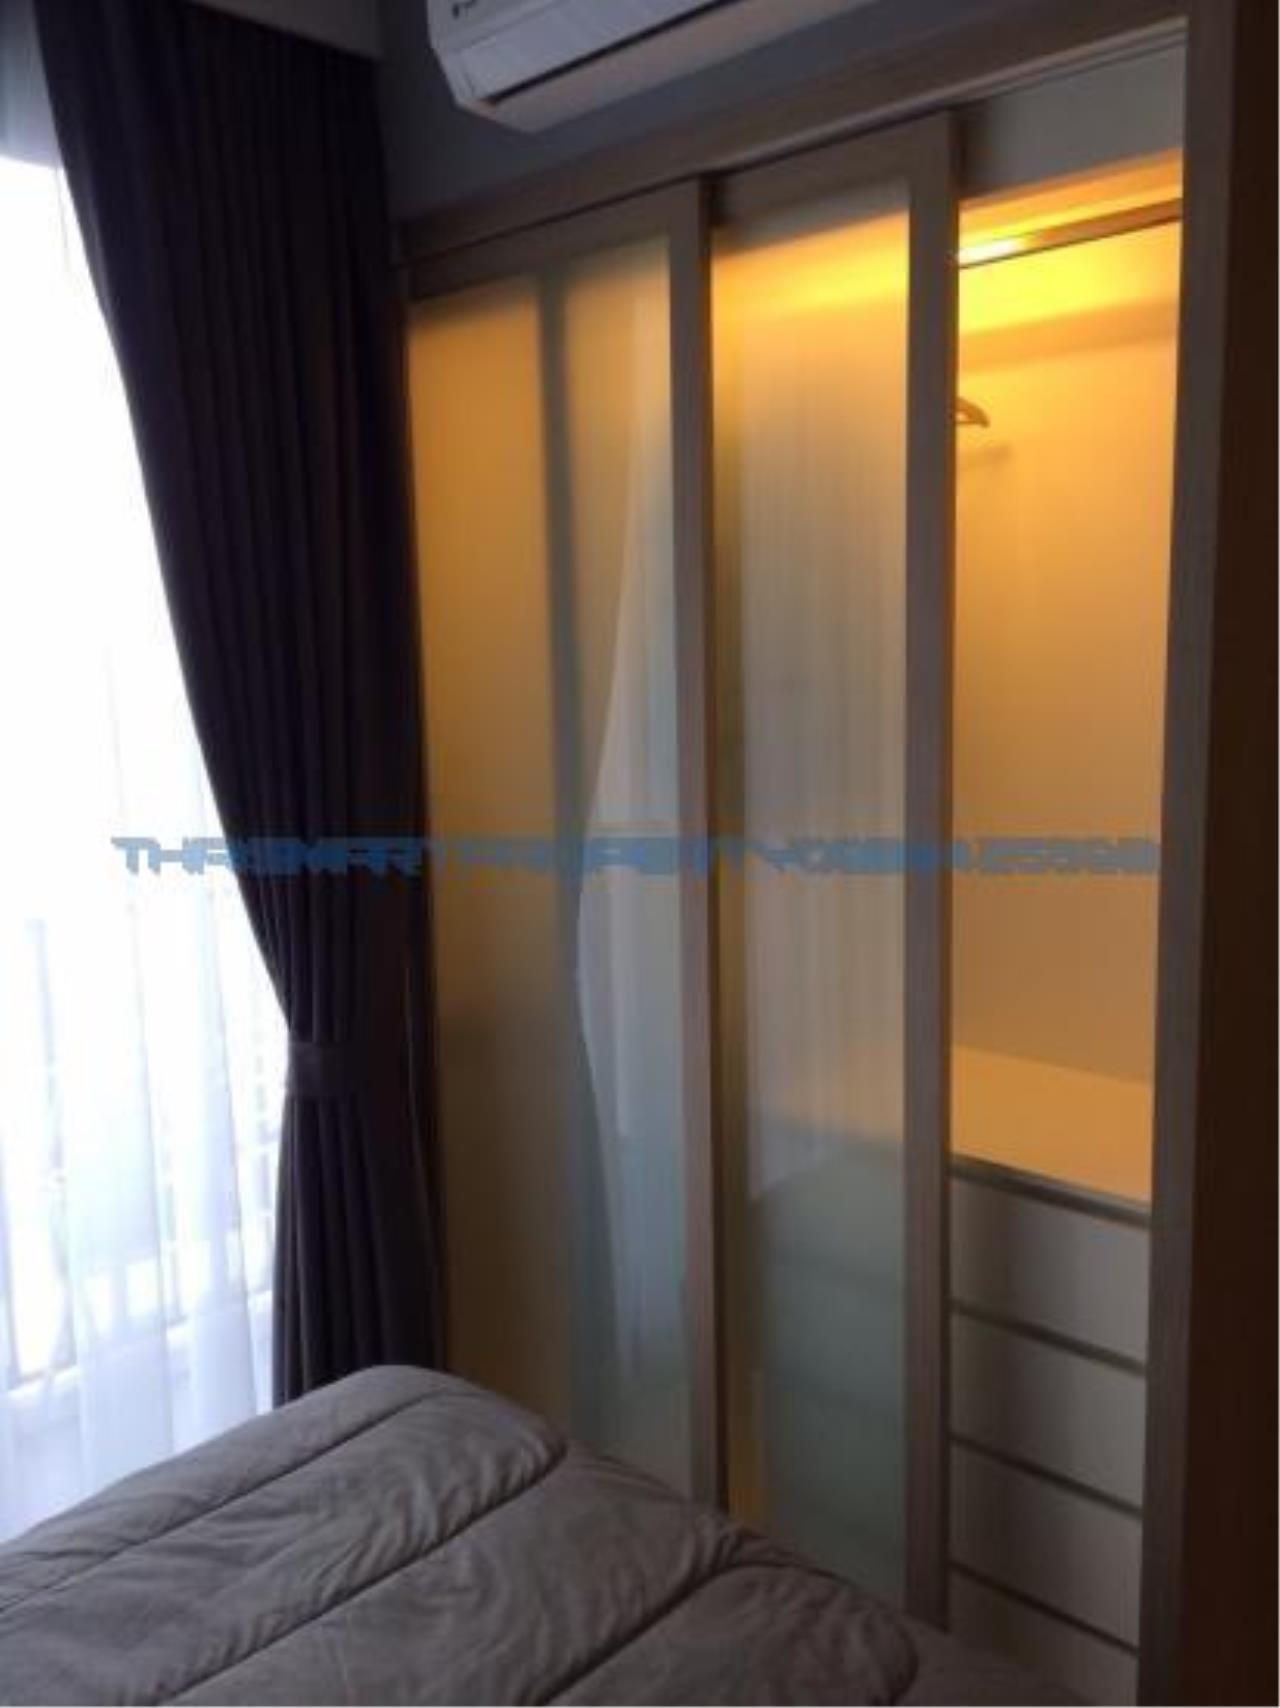 Thai Smart Property Agency's Condo M Thonglor 10 near Bts Thonglor 10